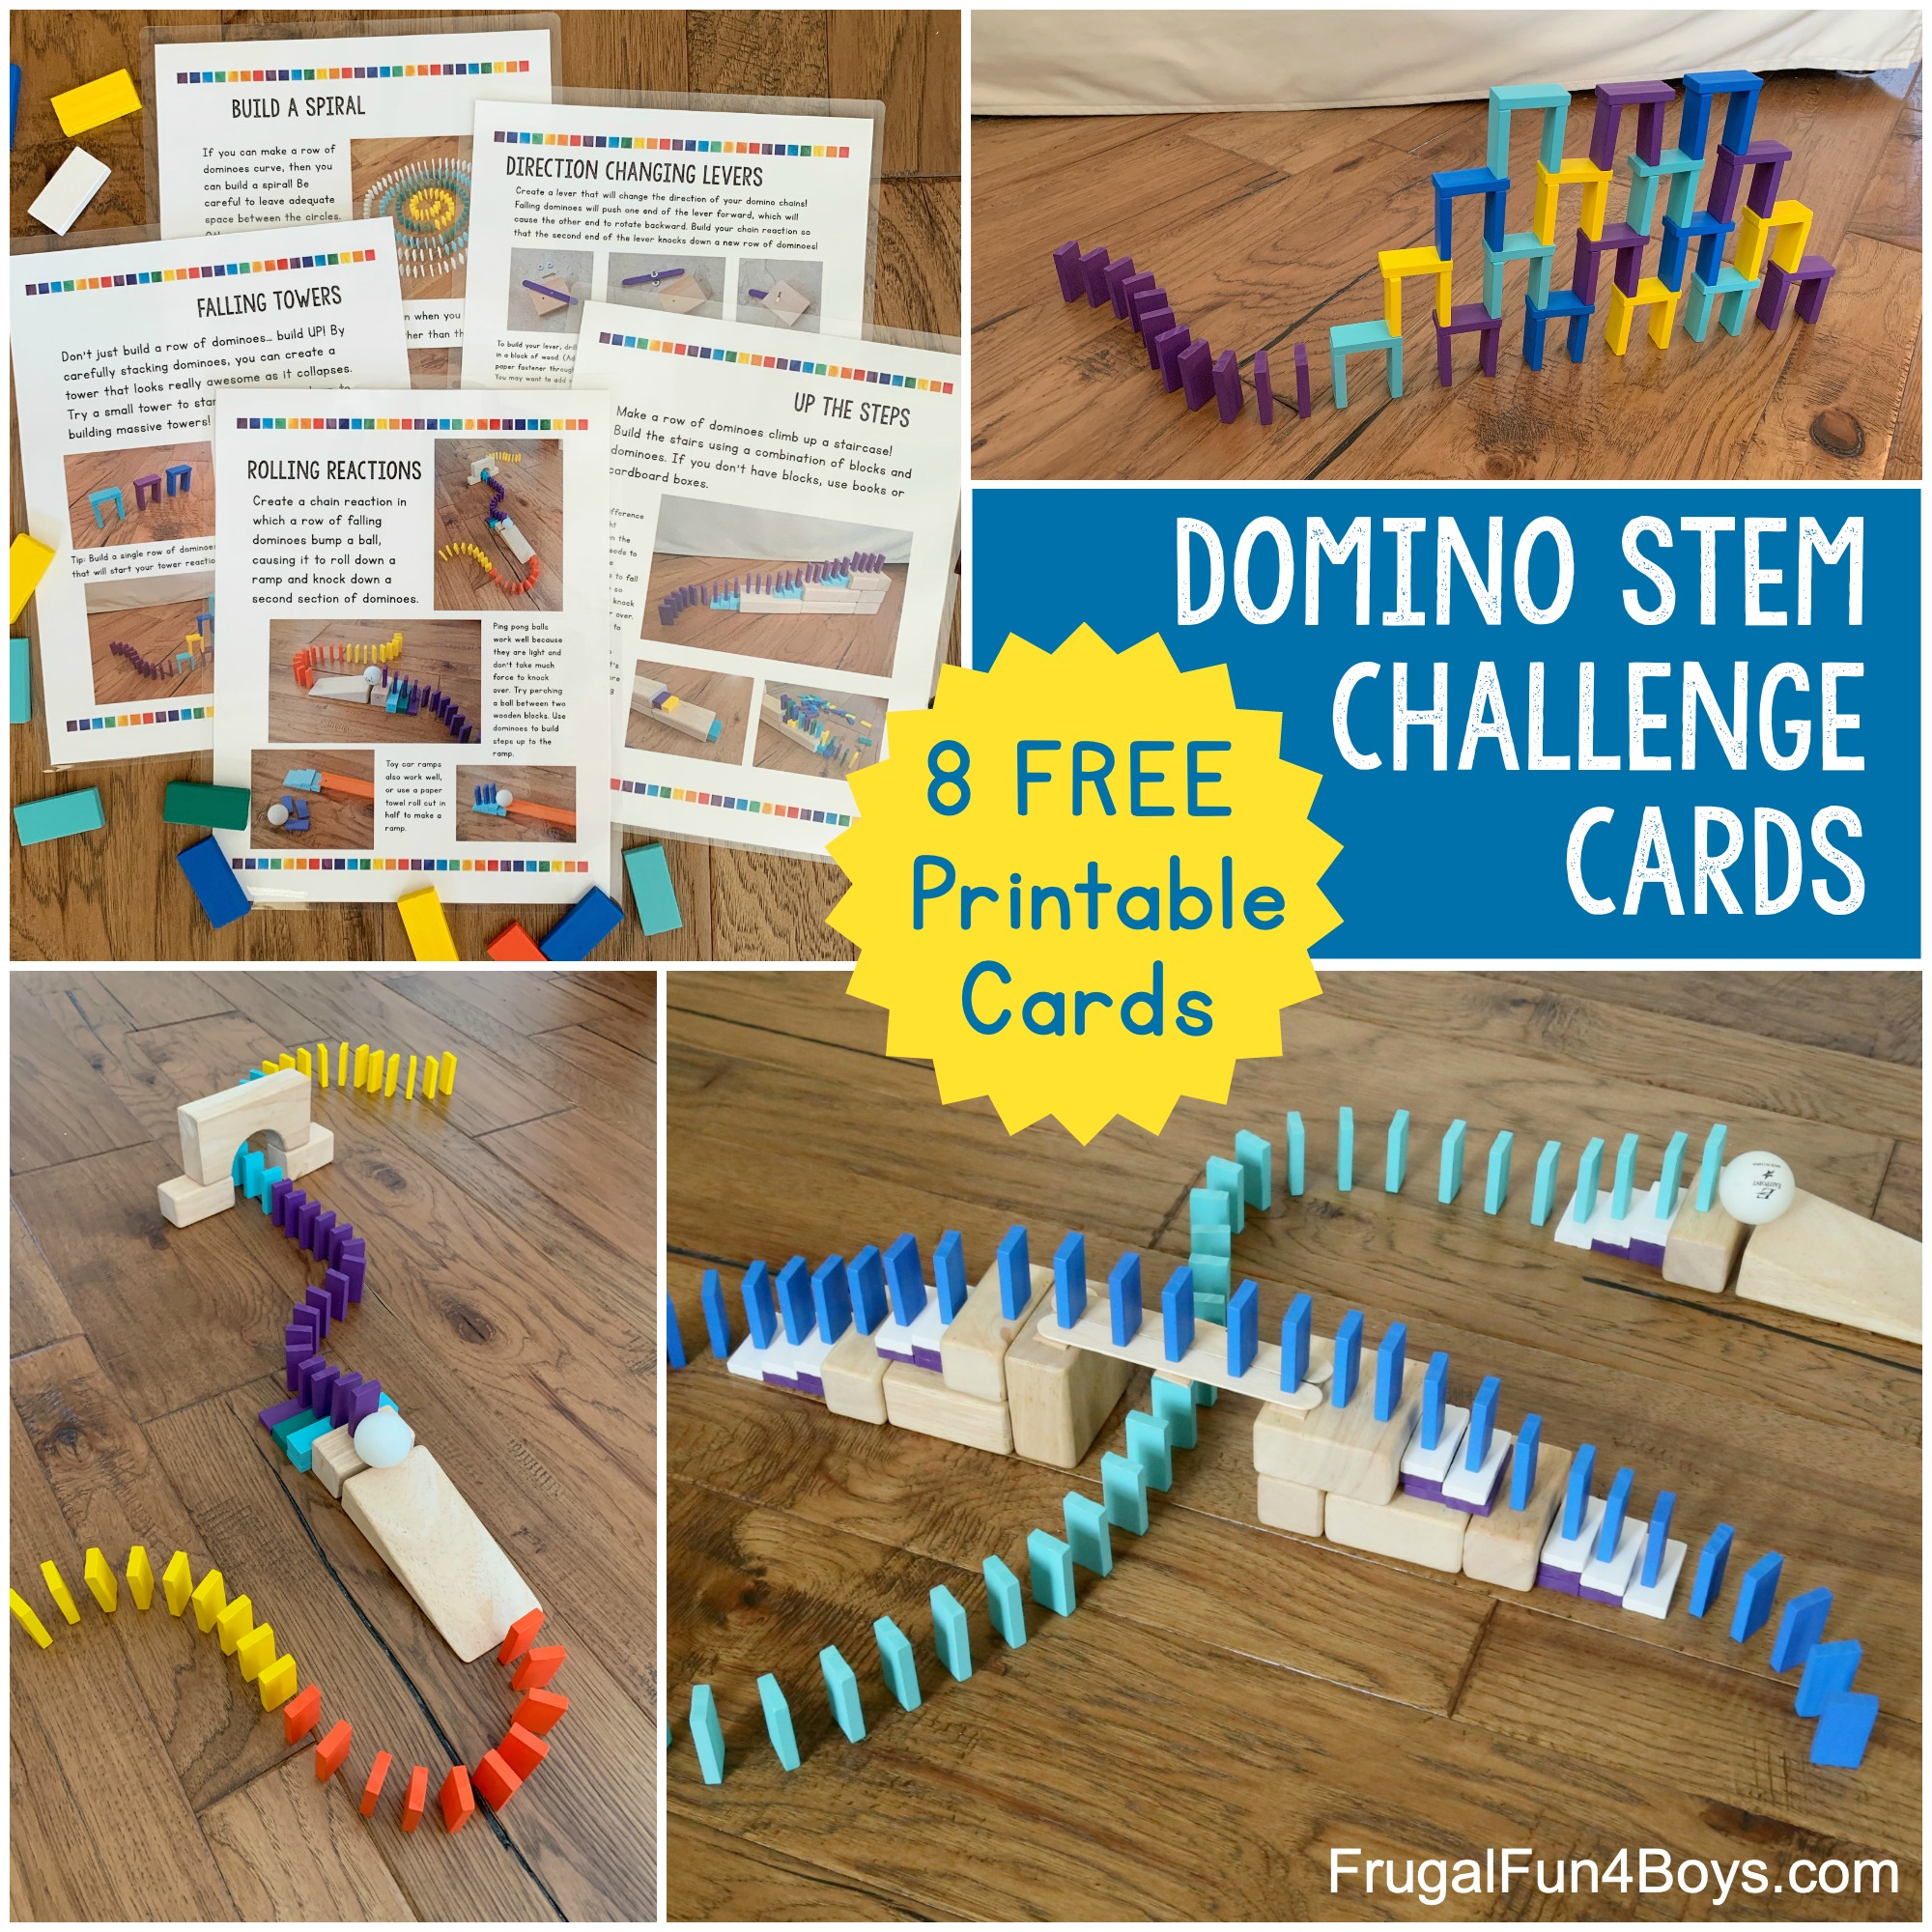 Domino Chain Reaction Engineering Challenge Cards